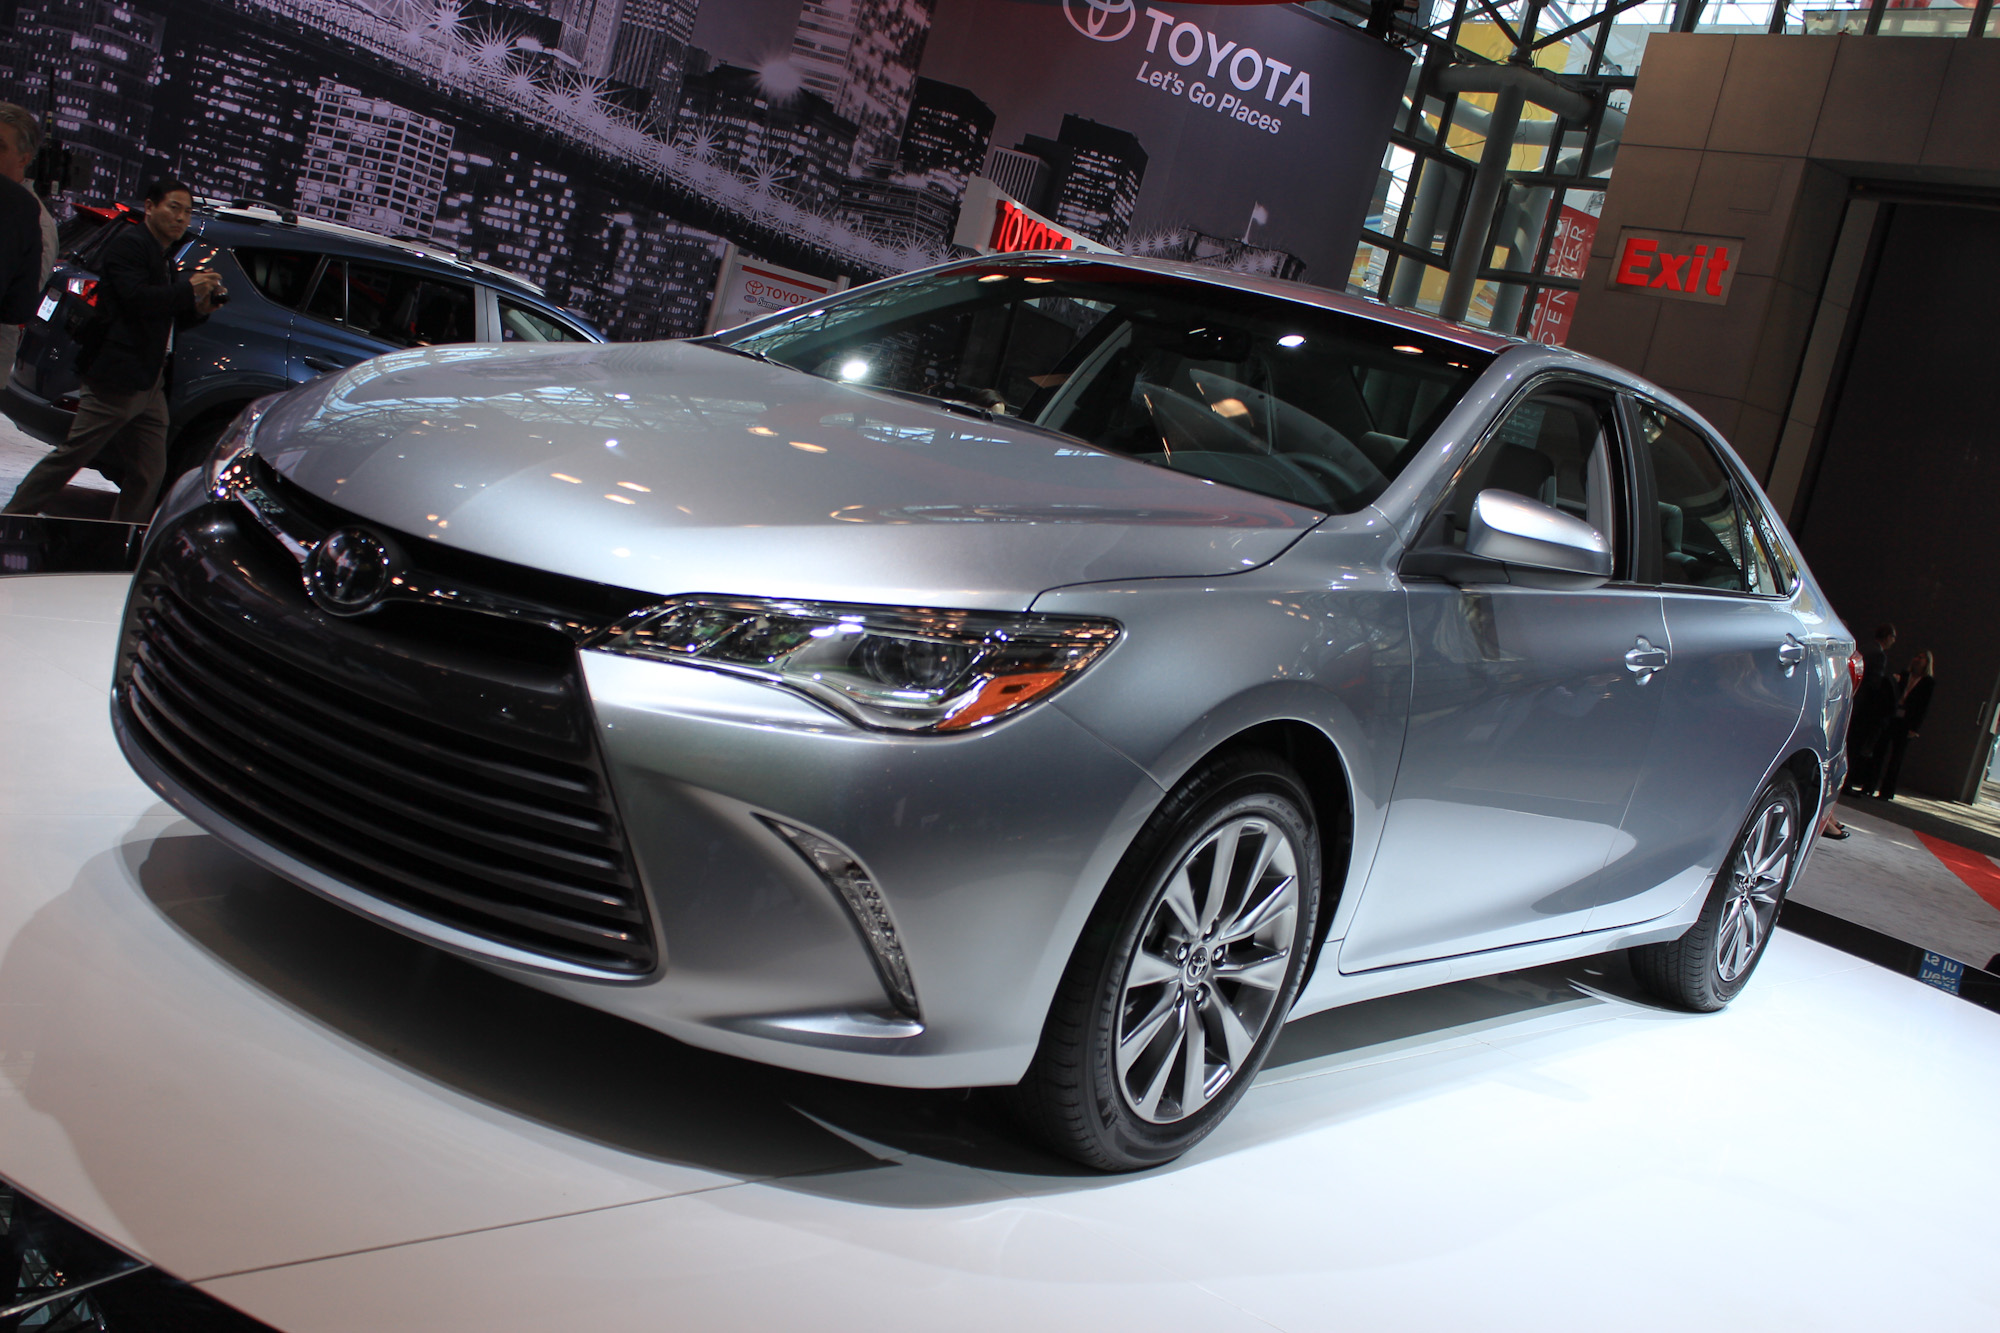 2015 toyota camry video new york auto show. Black Bedroom Furniture Sets. Home Design Ideas